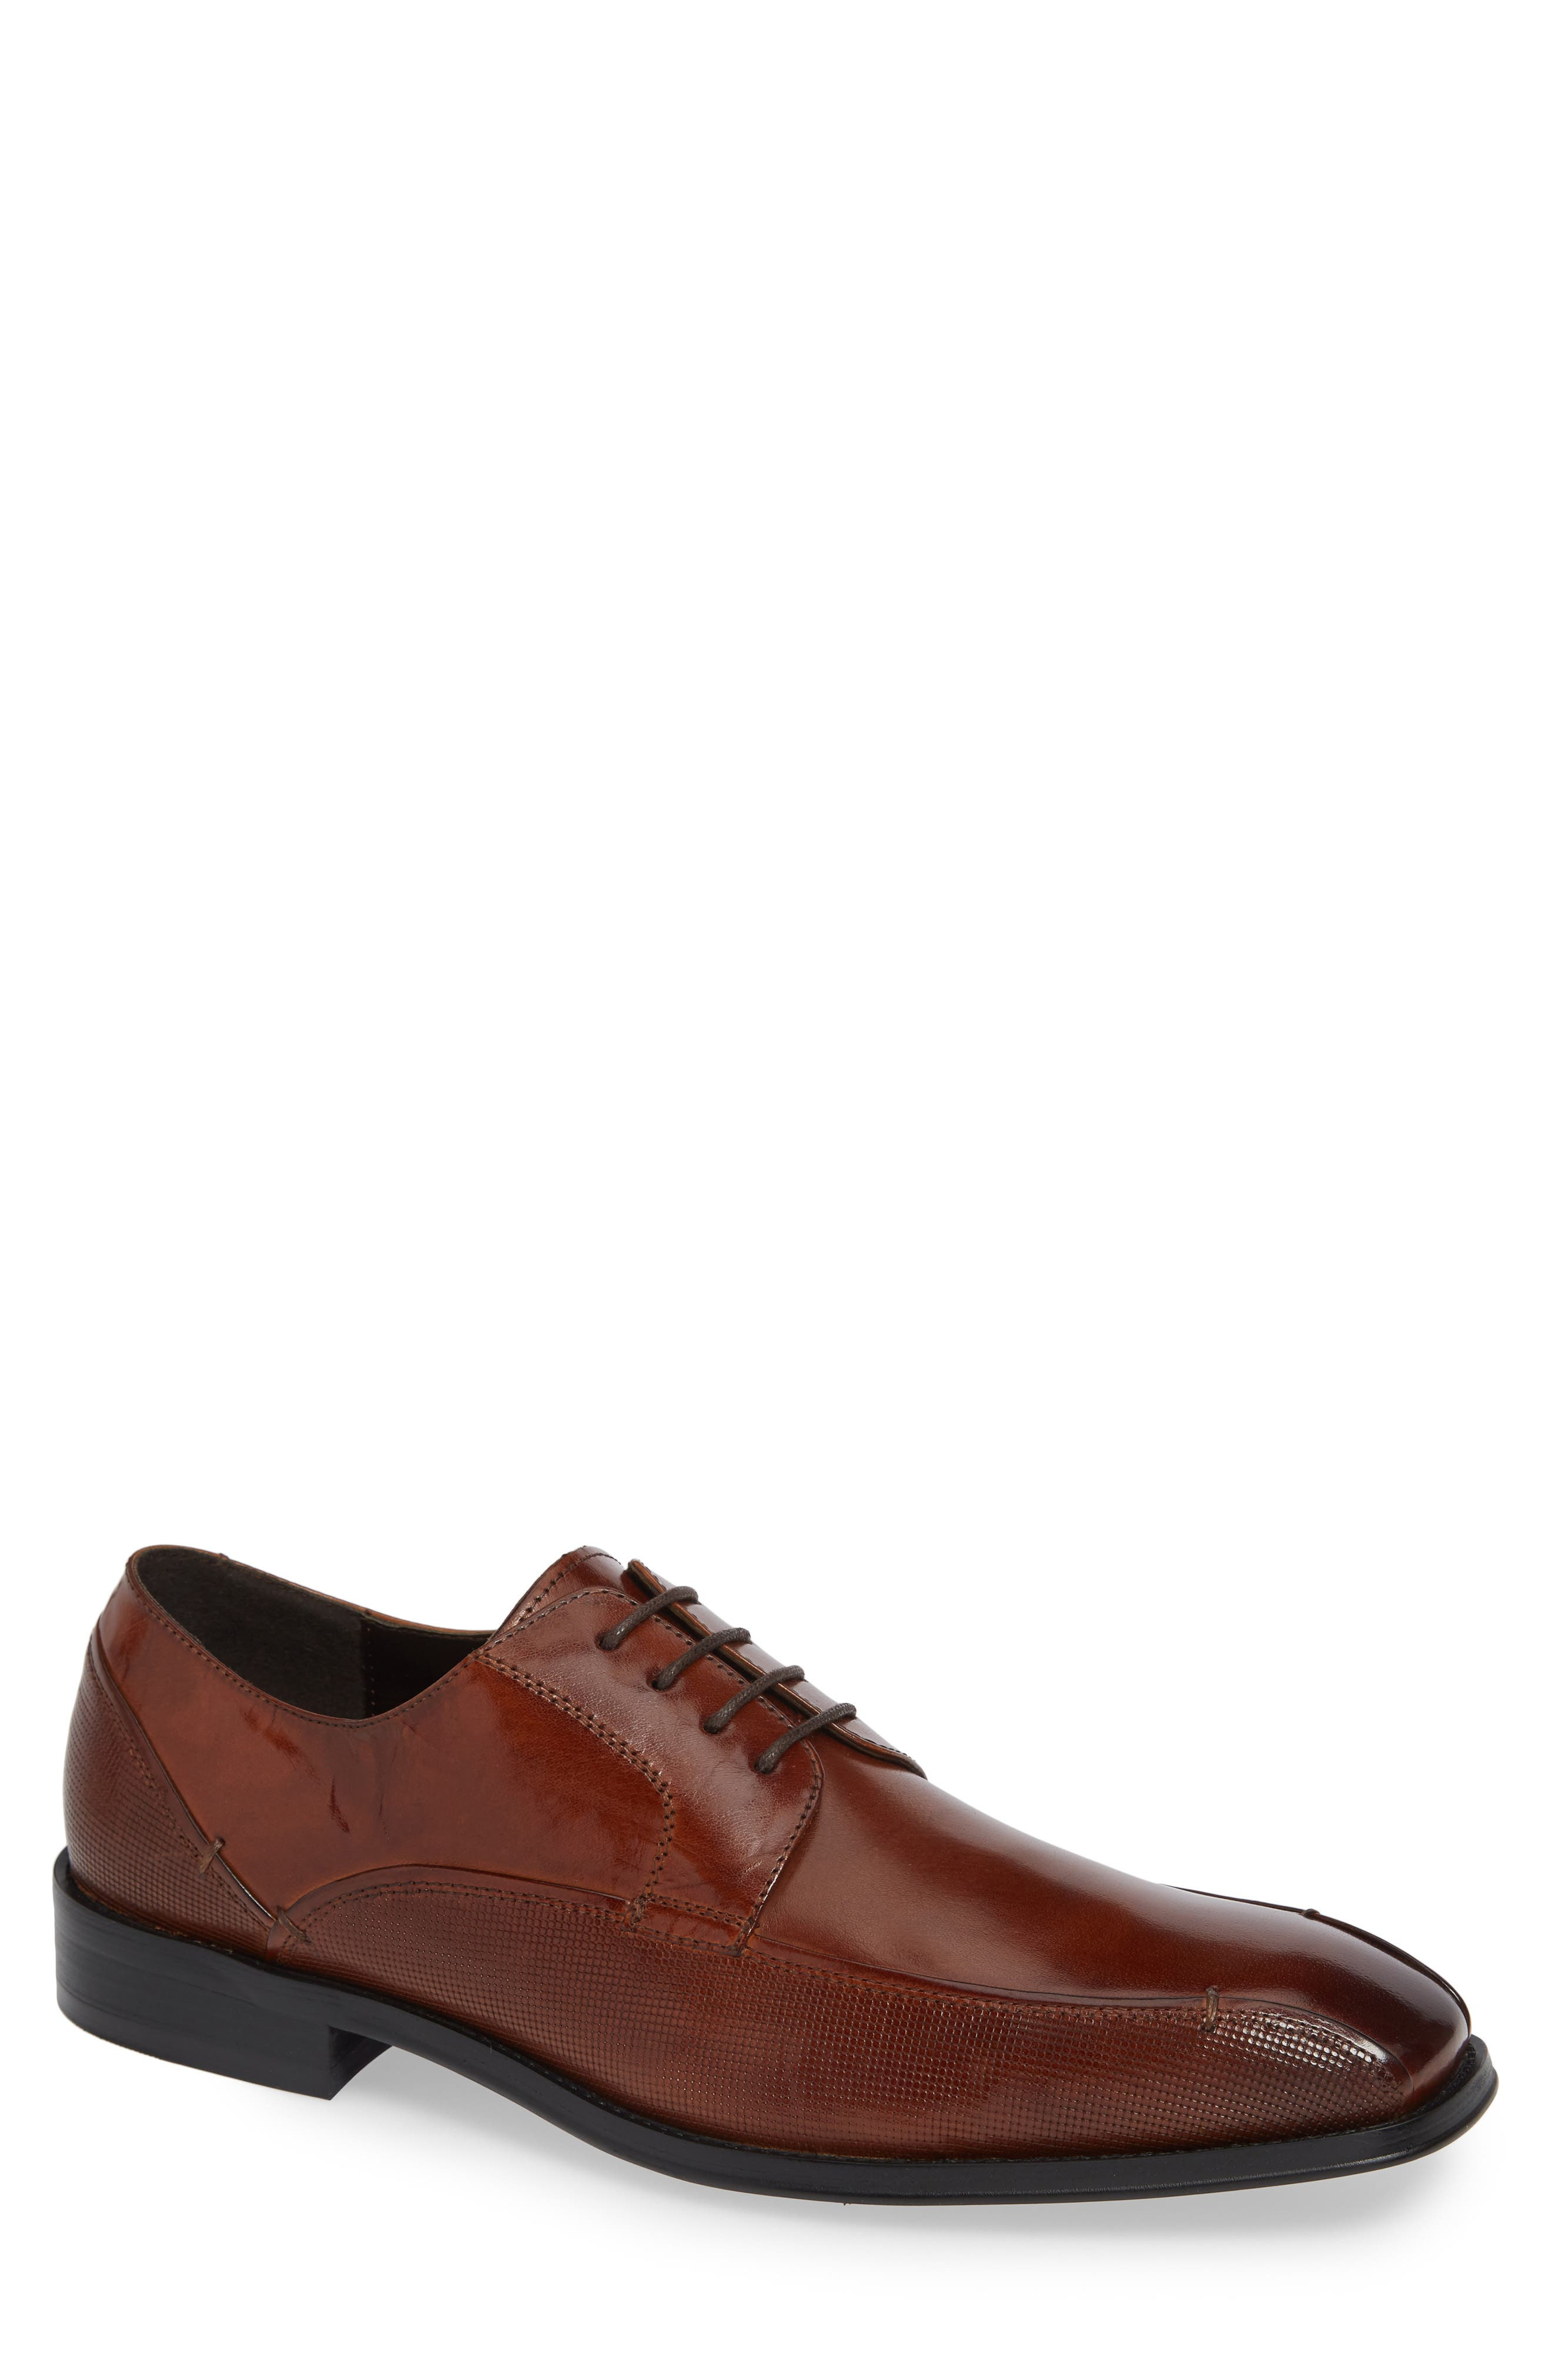 REACTION KENNETH COLE, Witter Textured Bike Toe Derby, Main thumbnail 1, color, COGNAC LEATHER